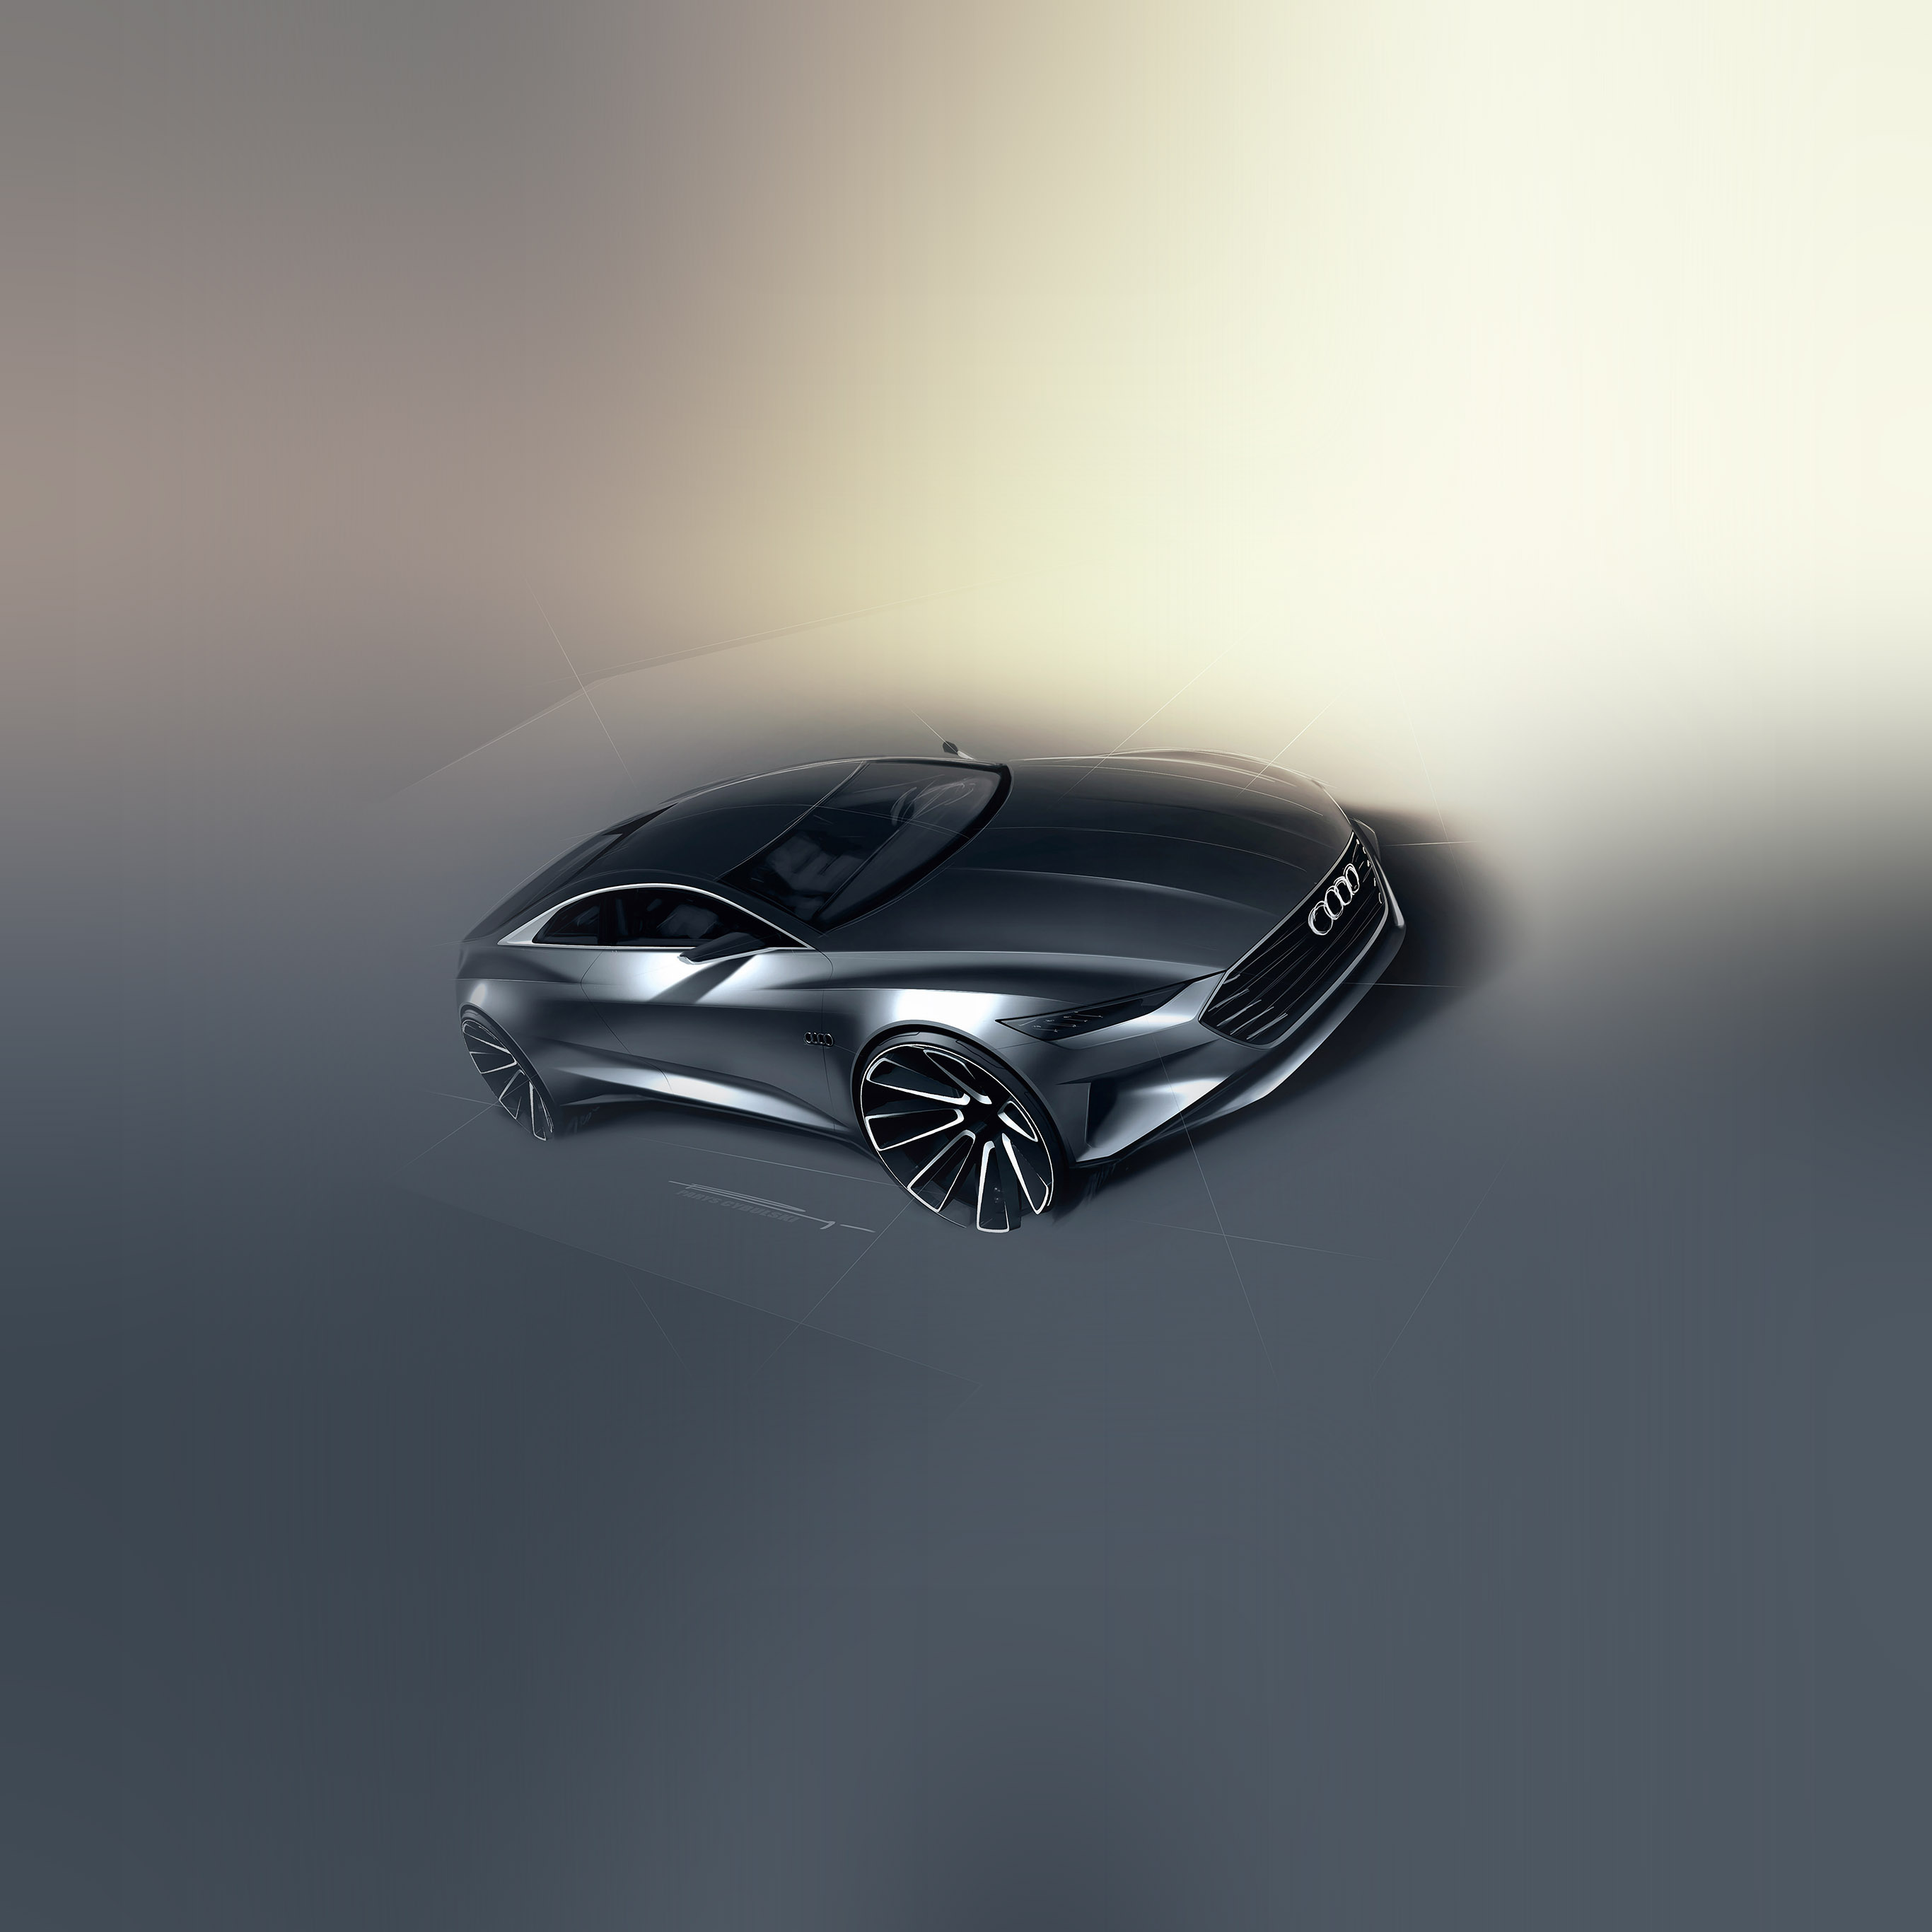 Galaxy S4 Fall Wallpaper Papers Co Android Wallpaper Av14 Audi Concept Car